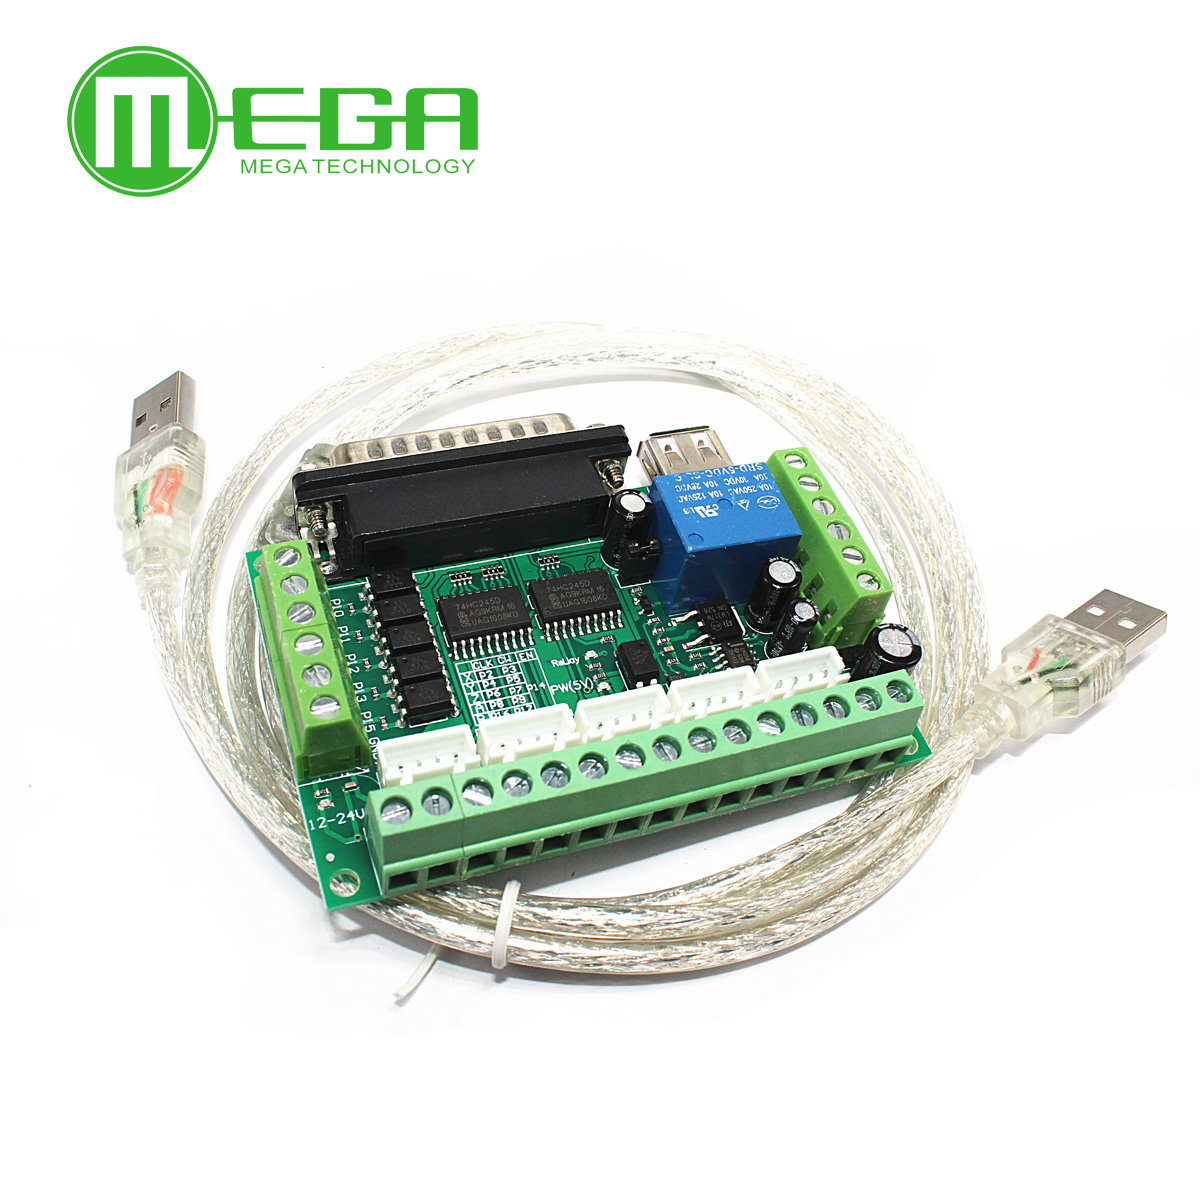 Upgraded 5 Axis CNC Interface Adapter Board For Stepper Motor Driver Mach3 +USB CableUpgraded 5 Axis CNC Interface Adapter Board For Stepper Motor Driver Mach3 +USB Cable